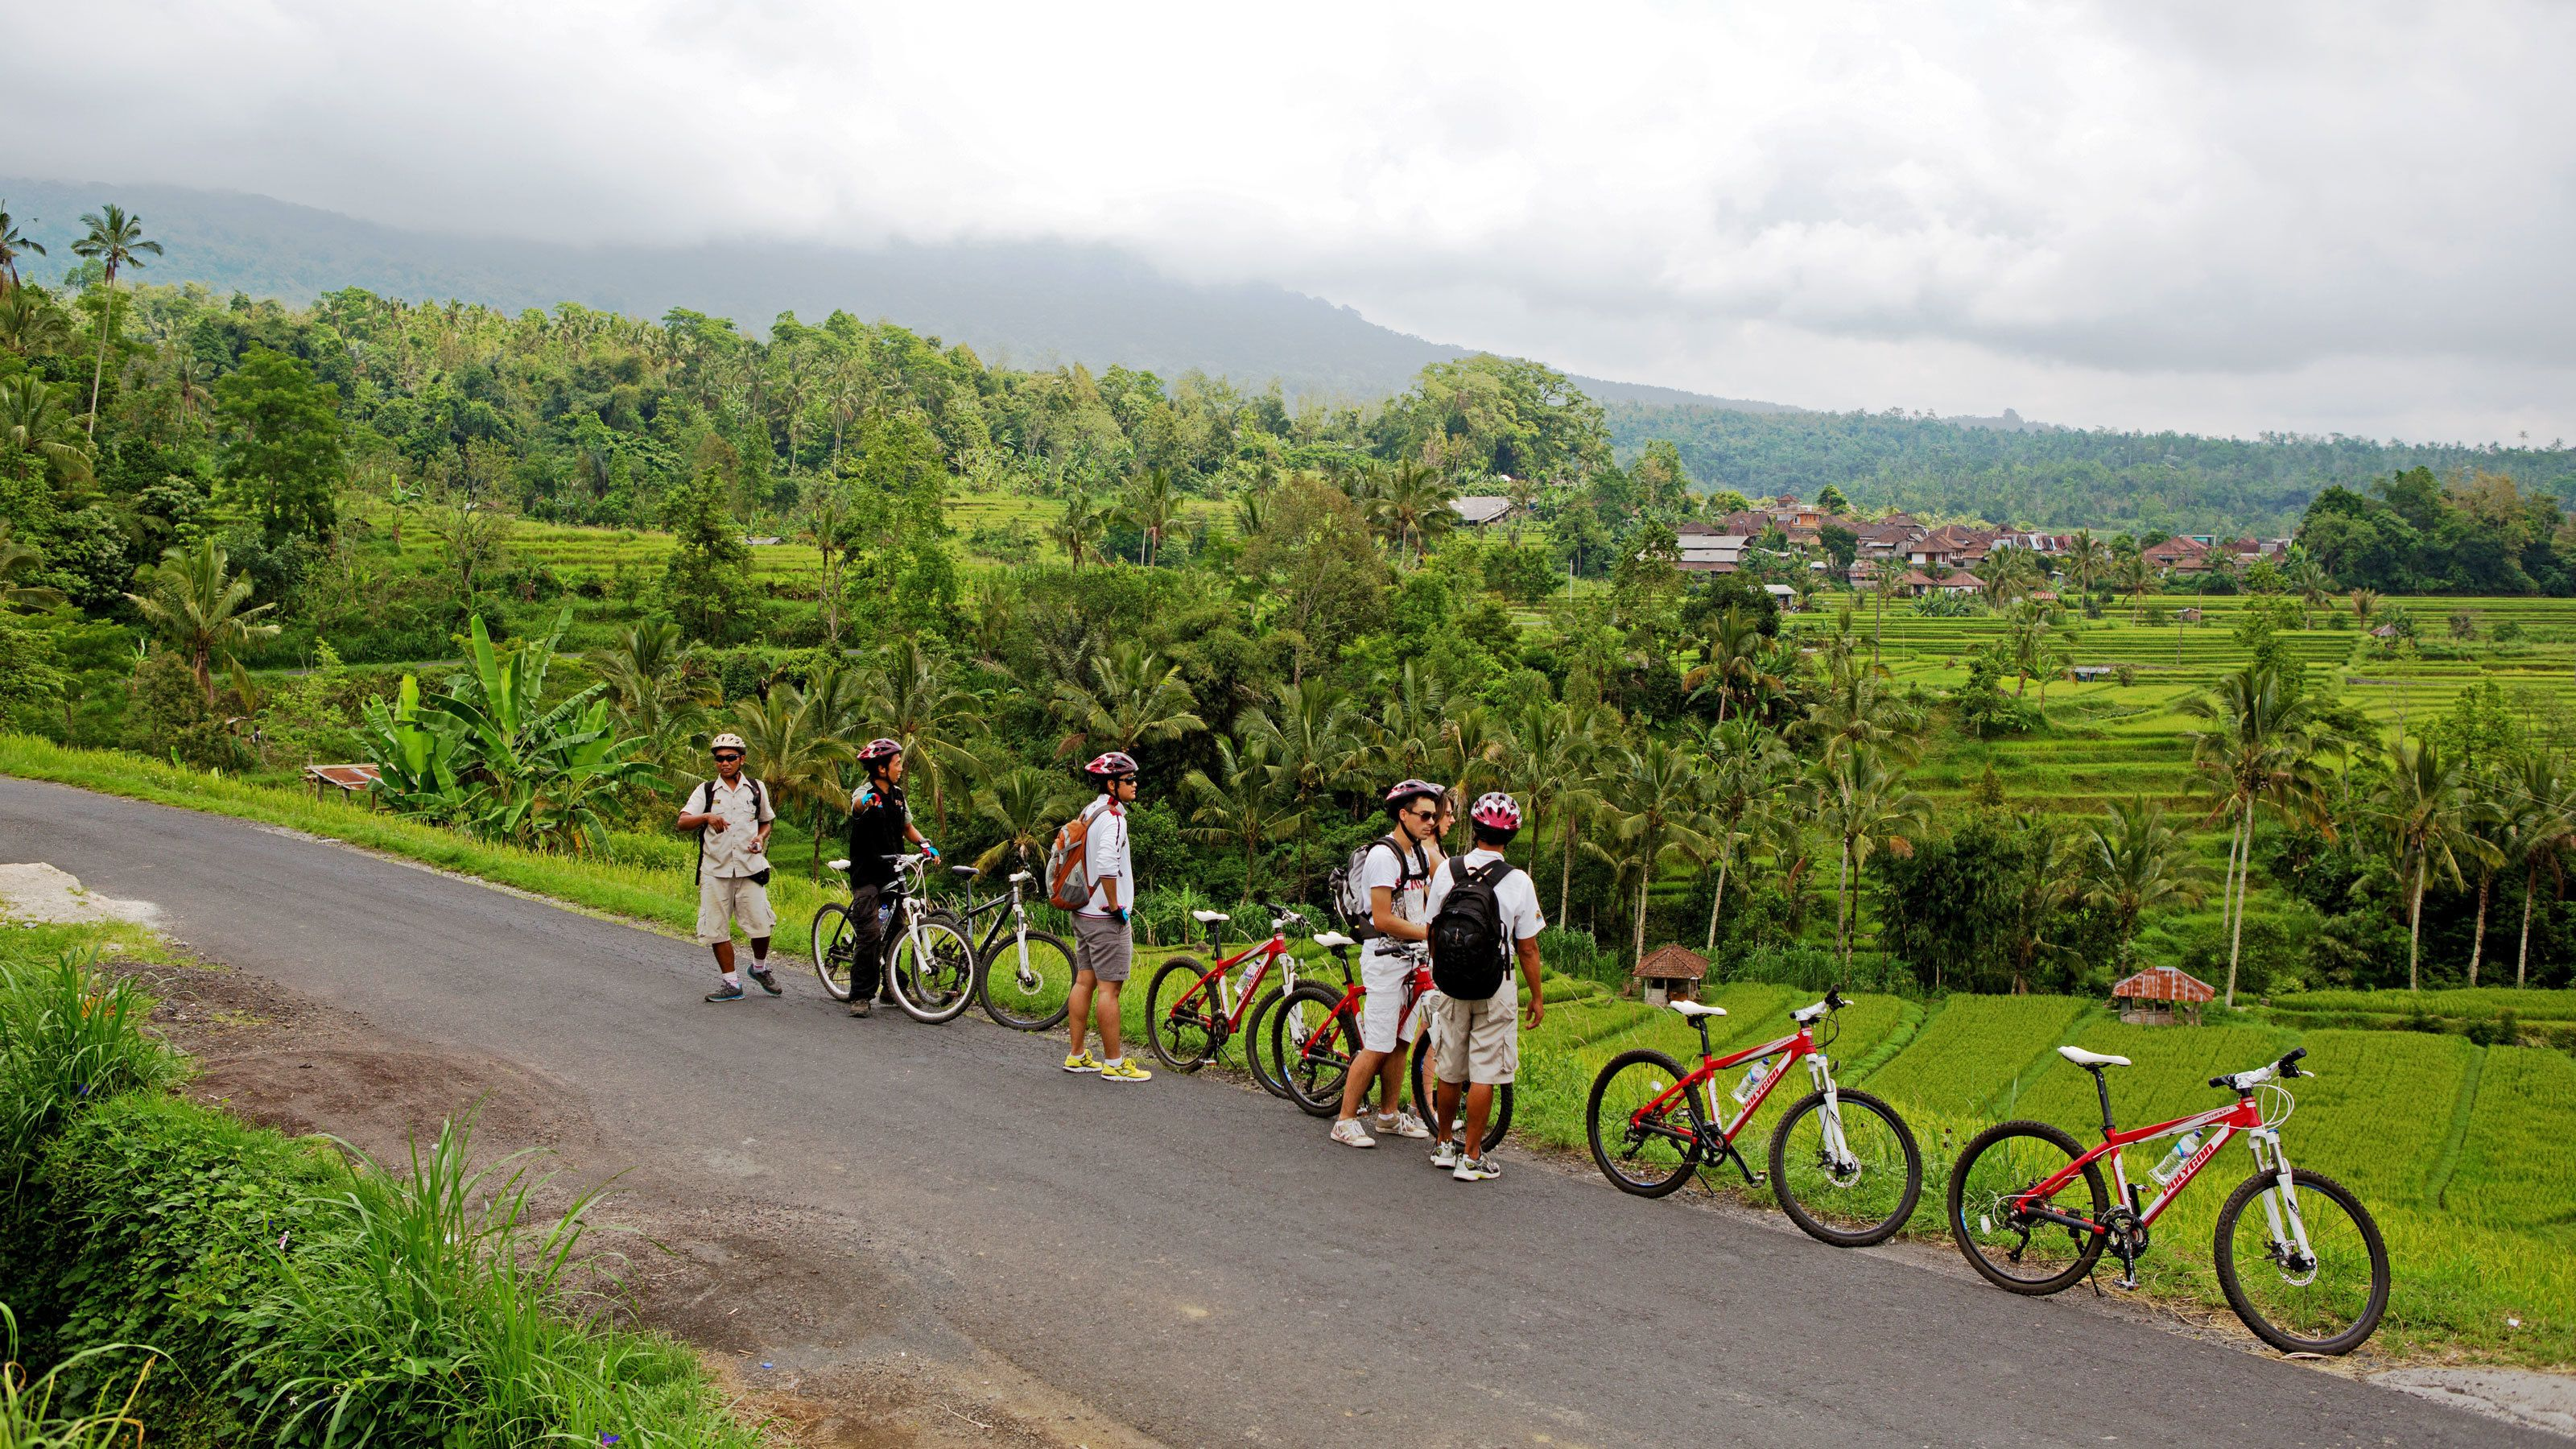 cyclists making a quick stop along the narrow road in Bali